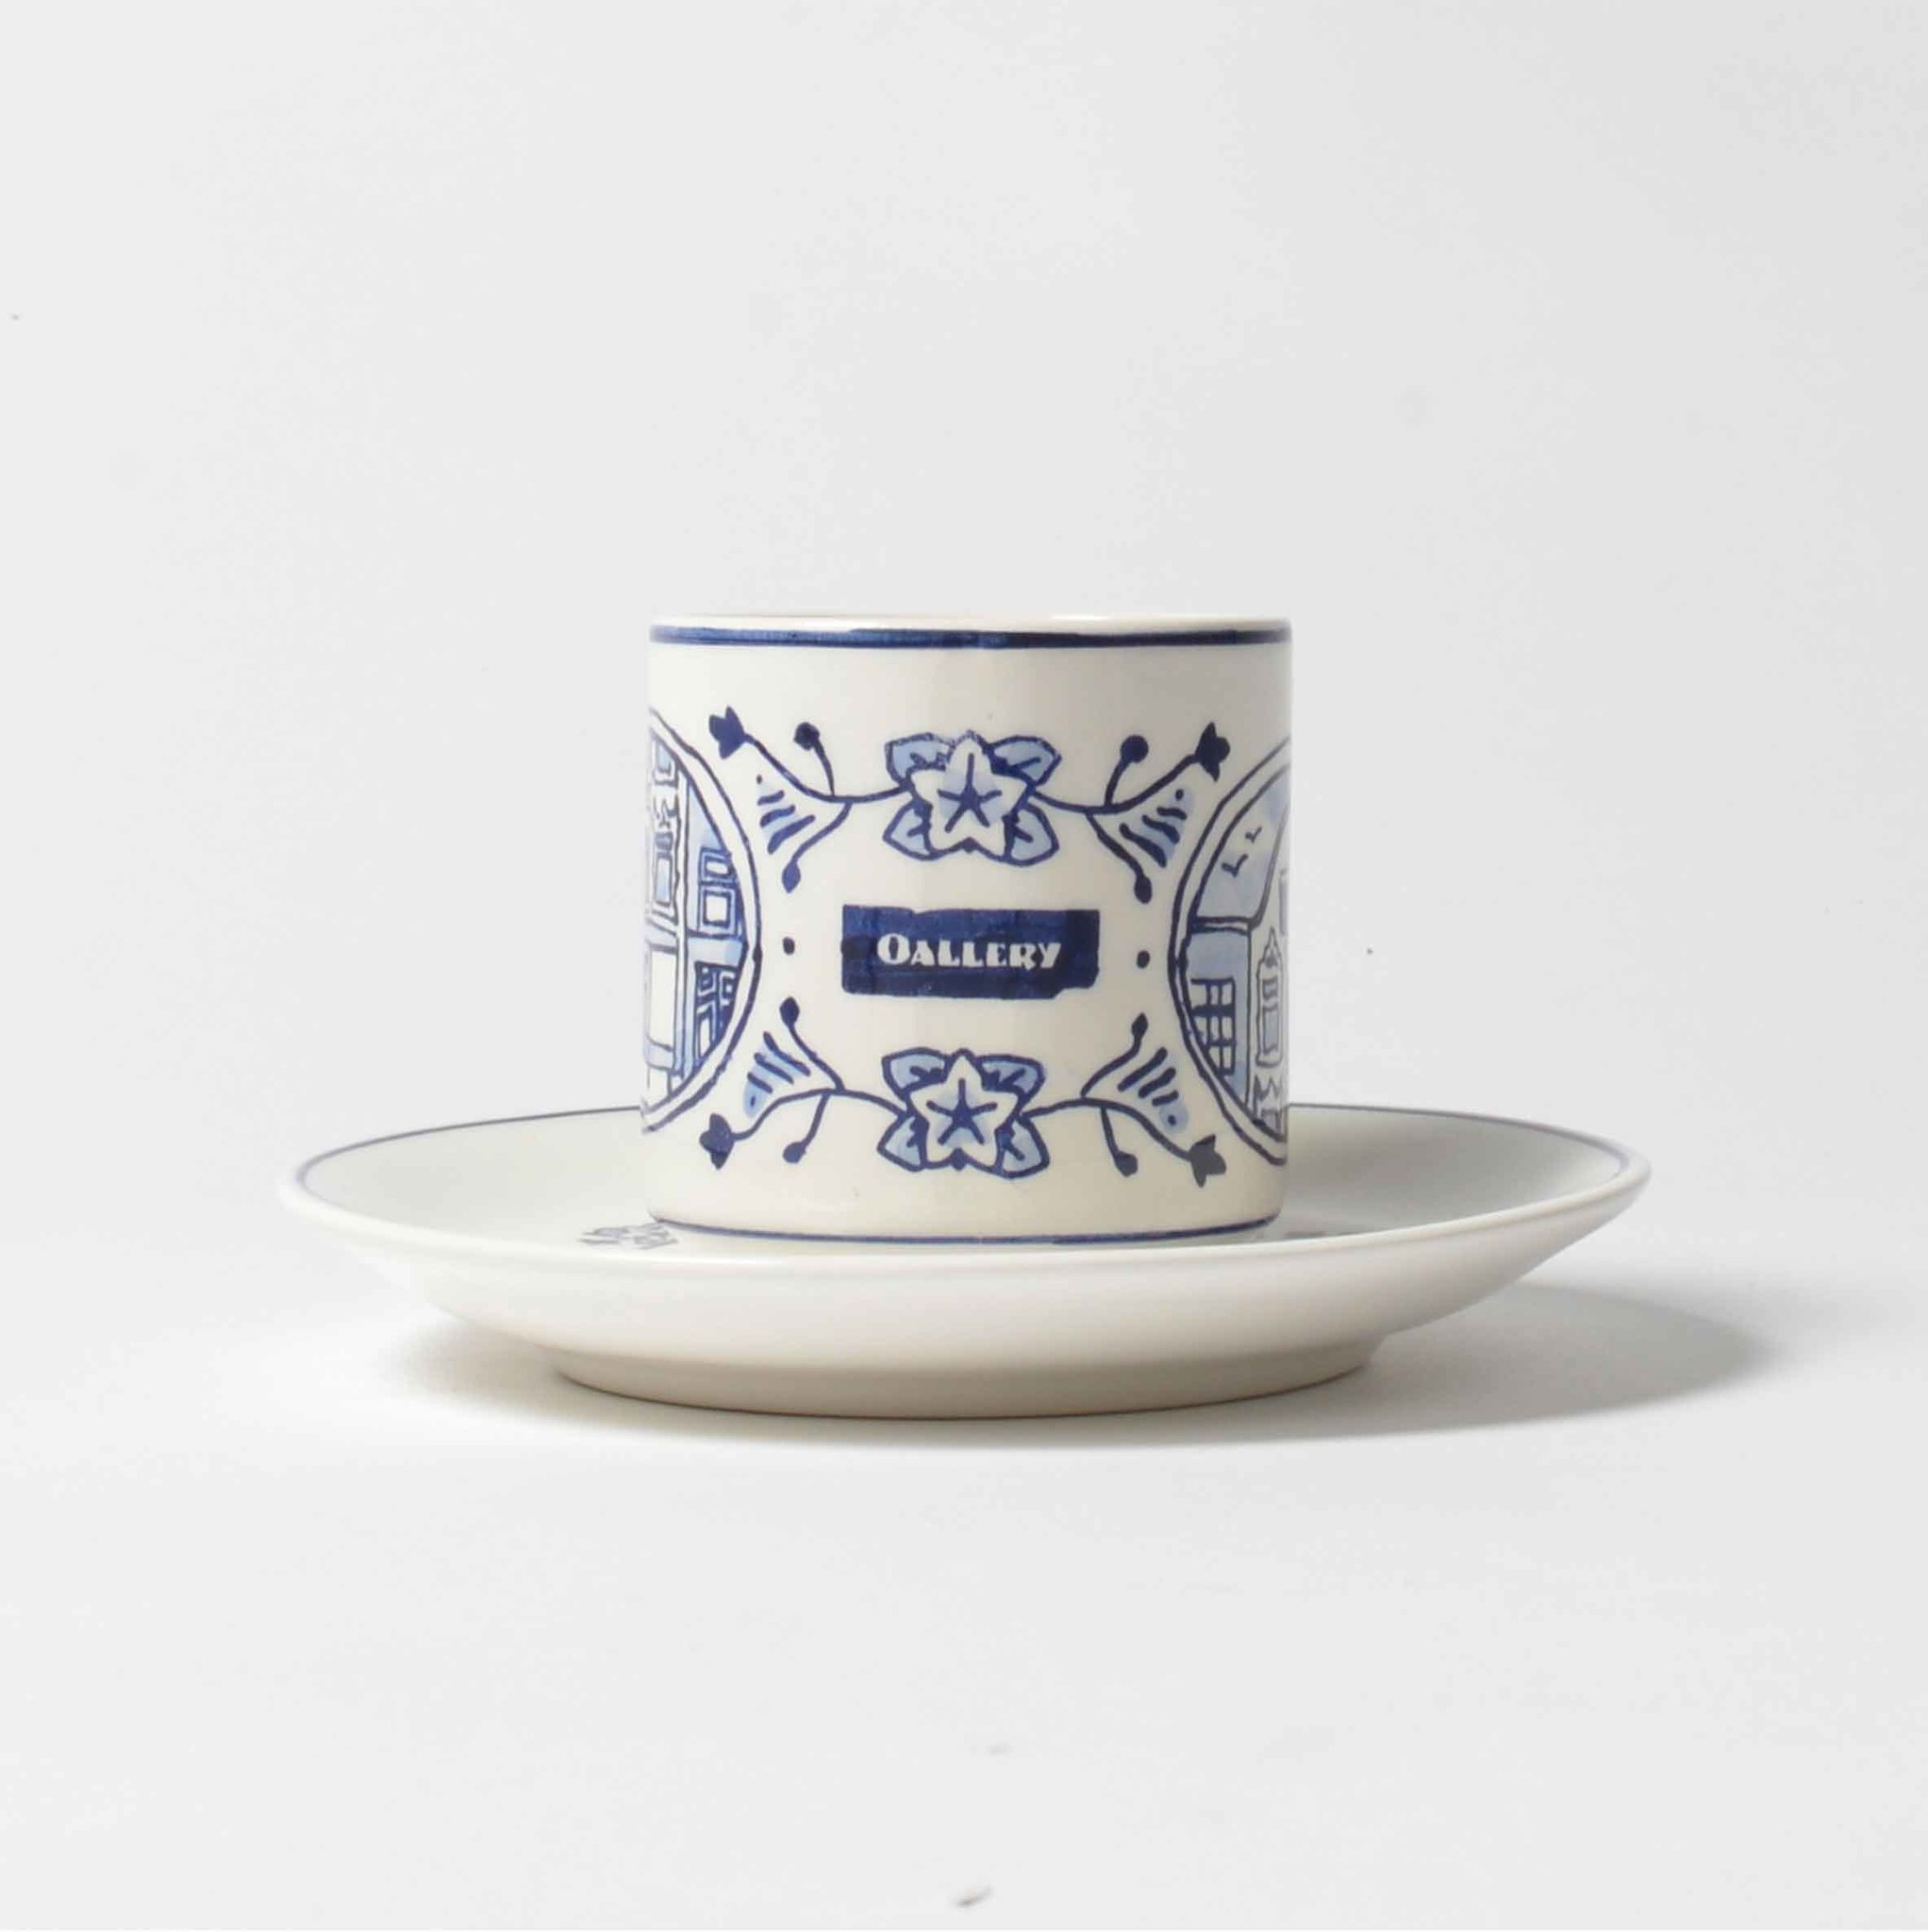 OALLERY delftware hand painted cup & saucer